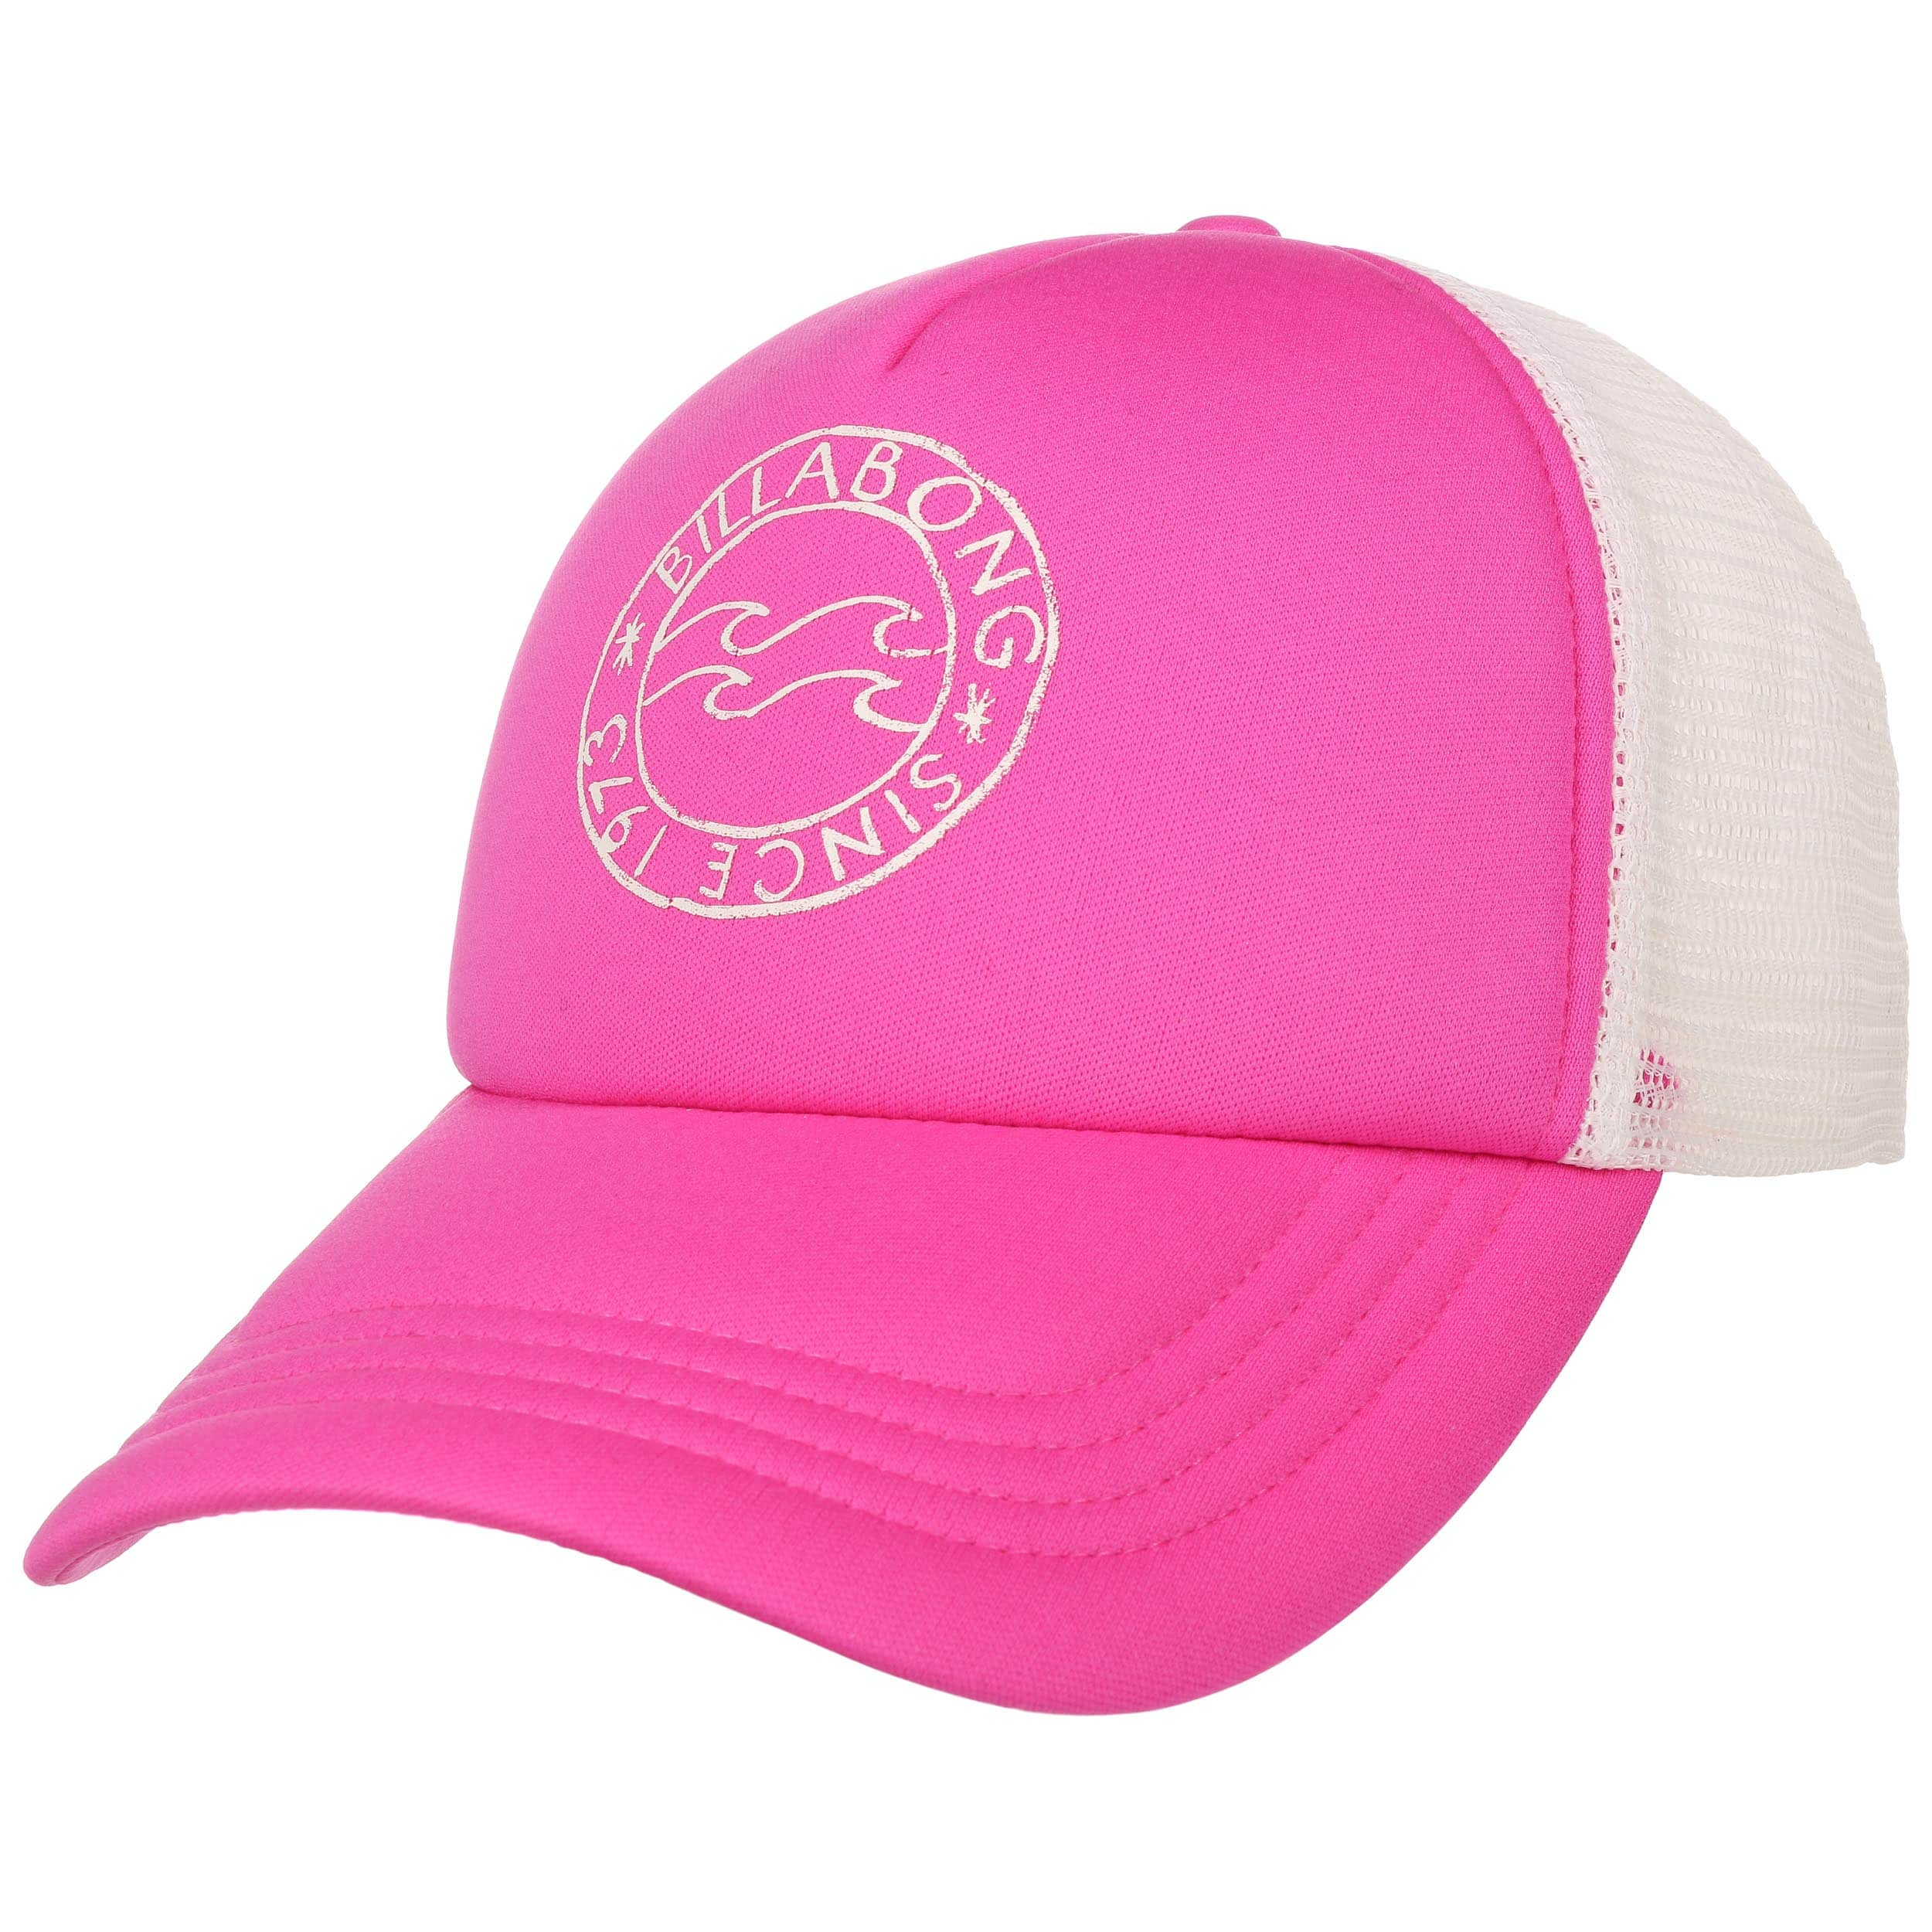 b91c44c4 ... usa since 1973 trucker cap by billabong pink 1 f5ac8 e996a